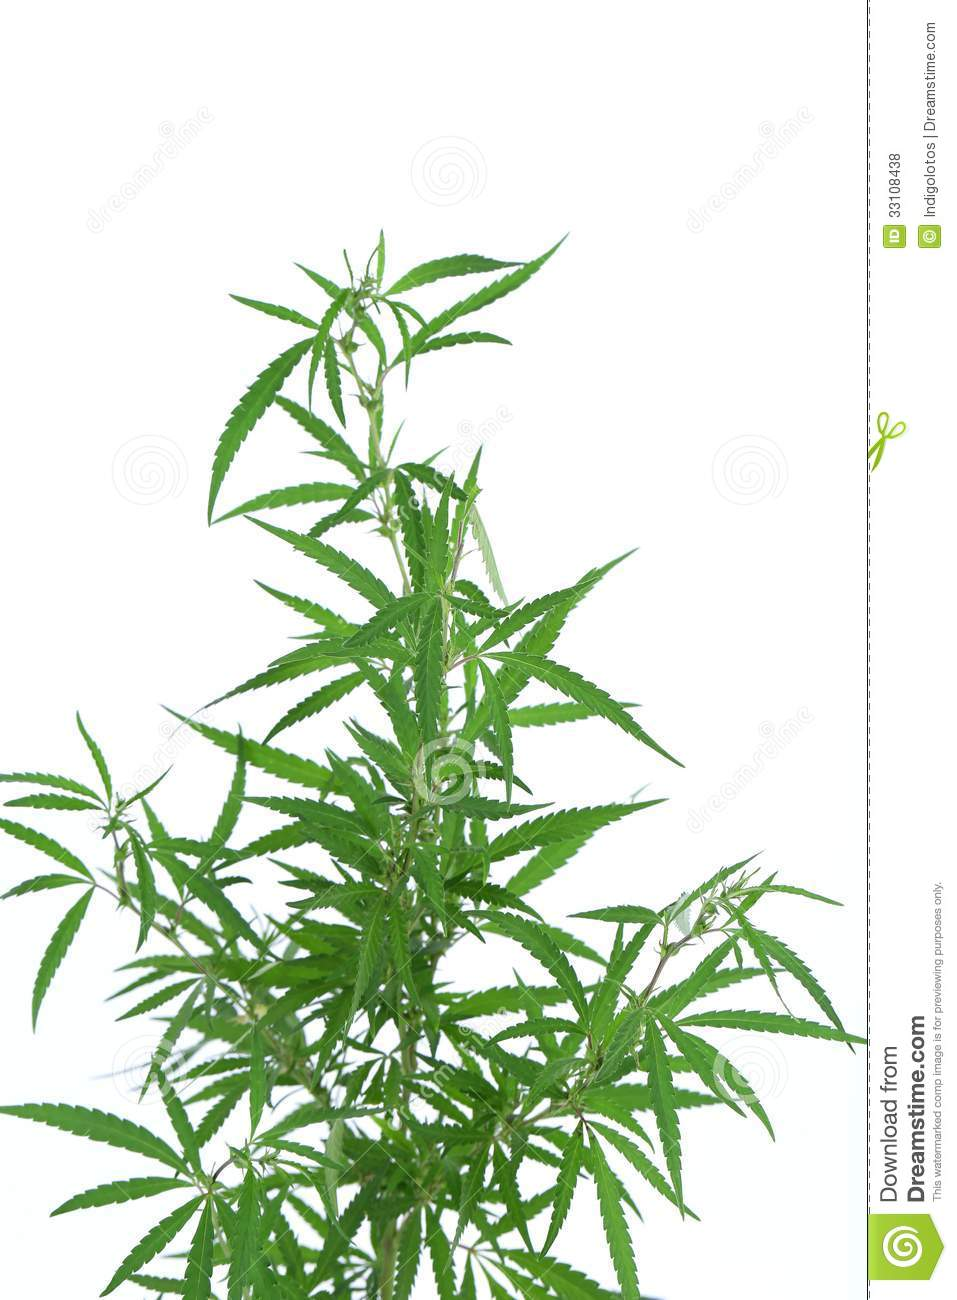 Cannabis plant royalty free stock photos image 33108438